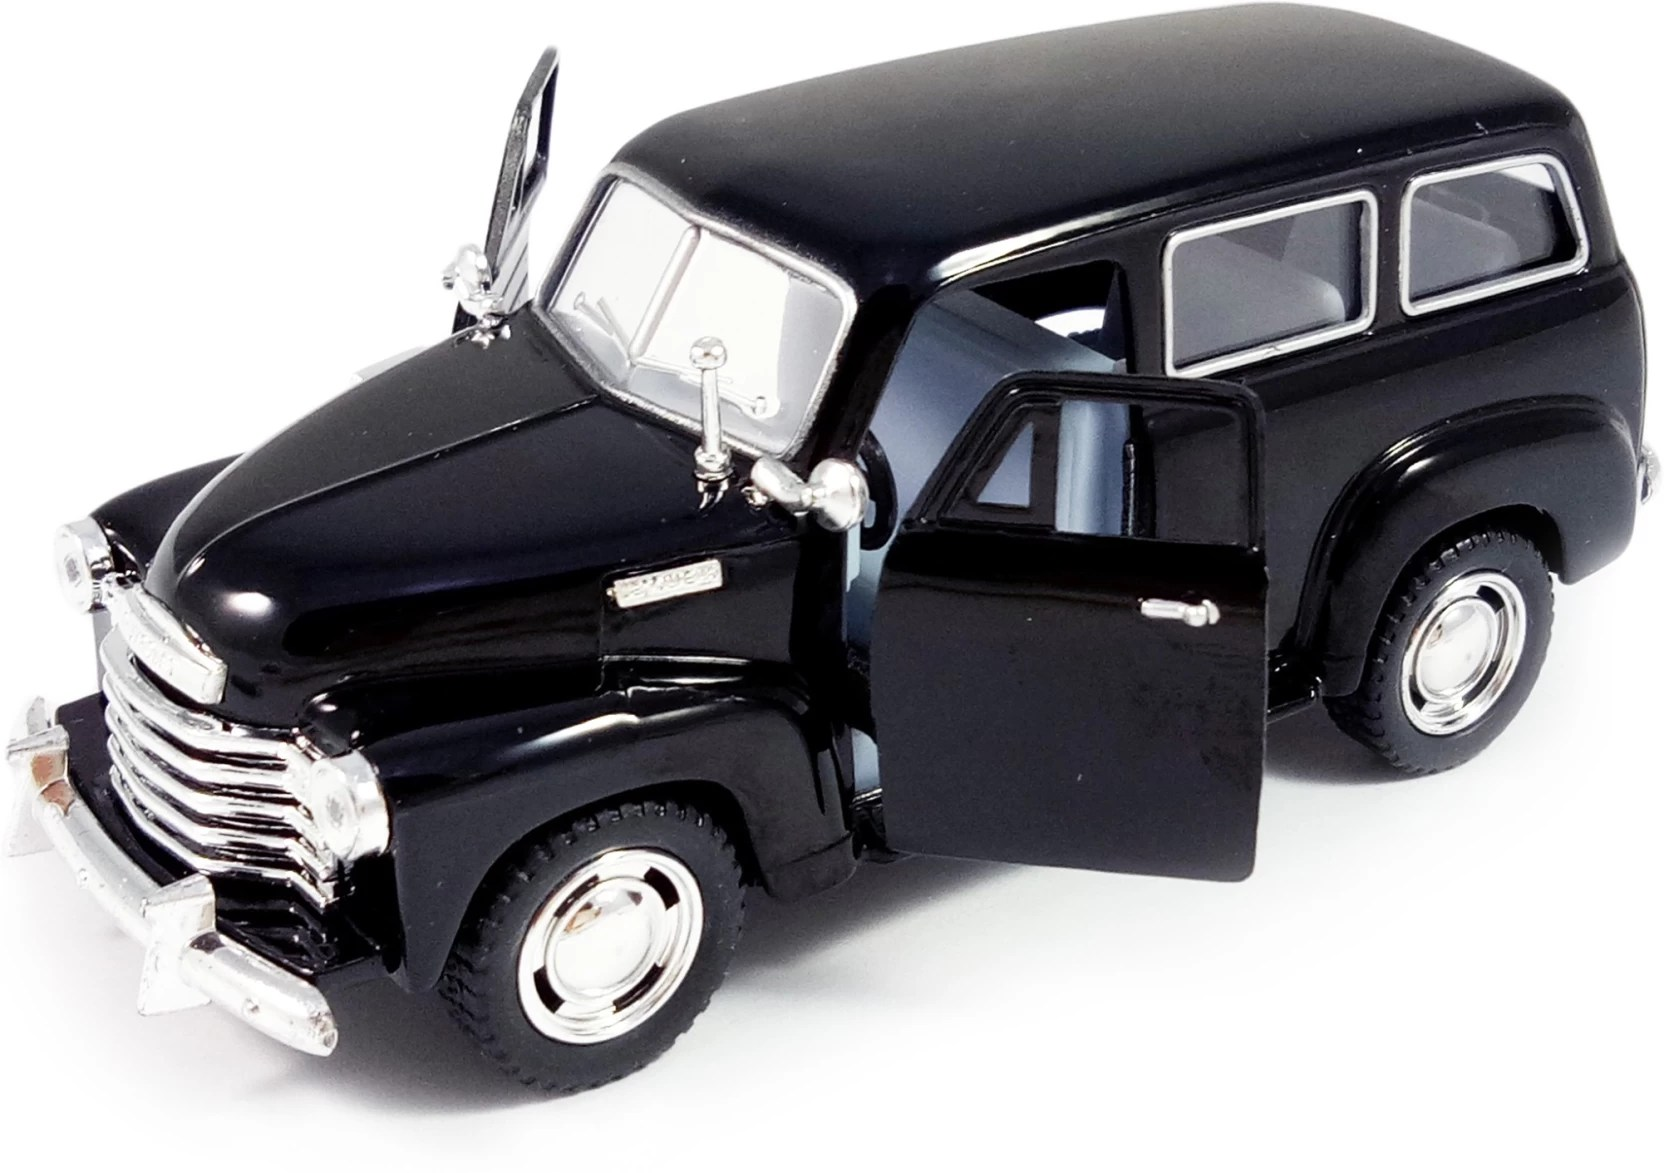 small resolution of kinsmart 5 1 36 scale pull back action 1950 chevrolet suburban carryall car toys for kids from smiles creation black